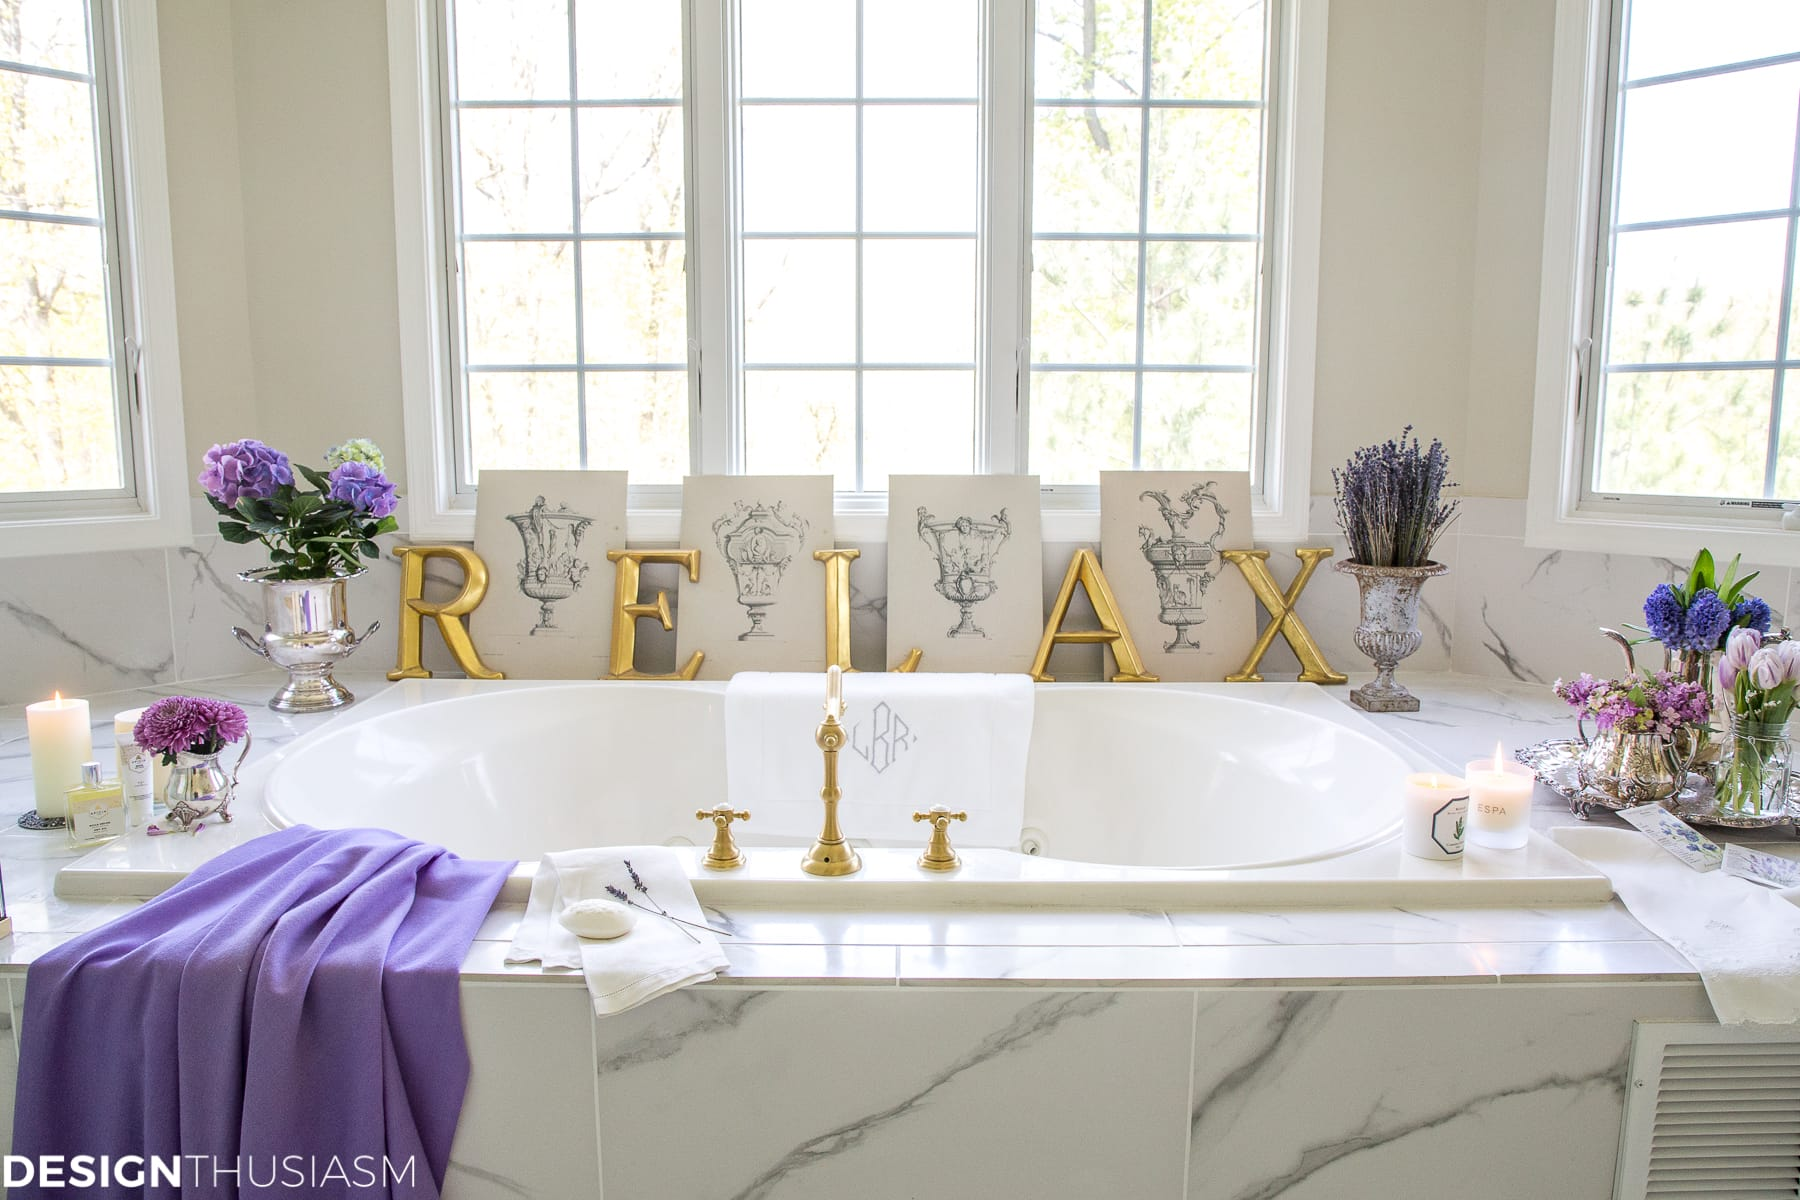 summer refresh bathroom decor on the tub surround